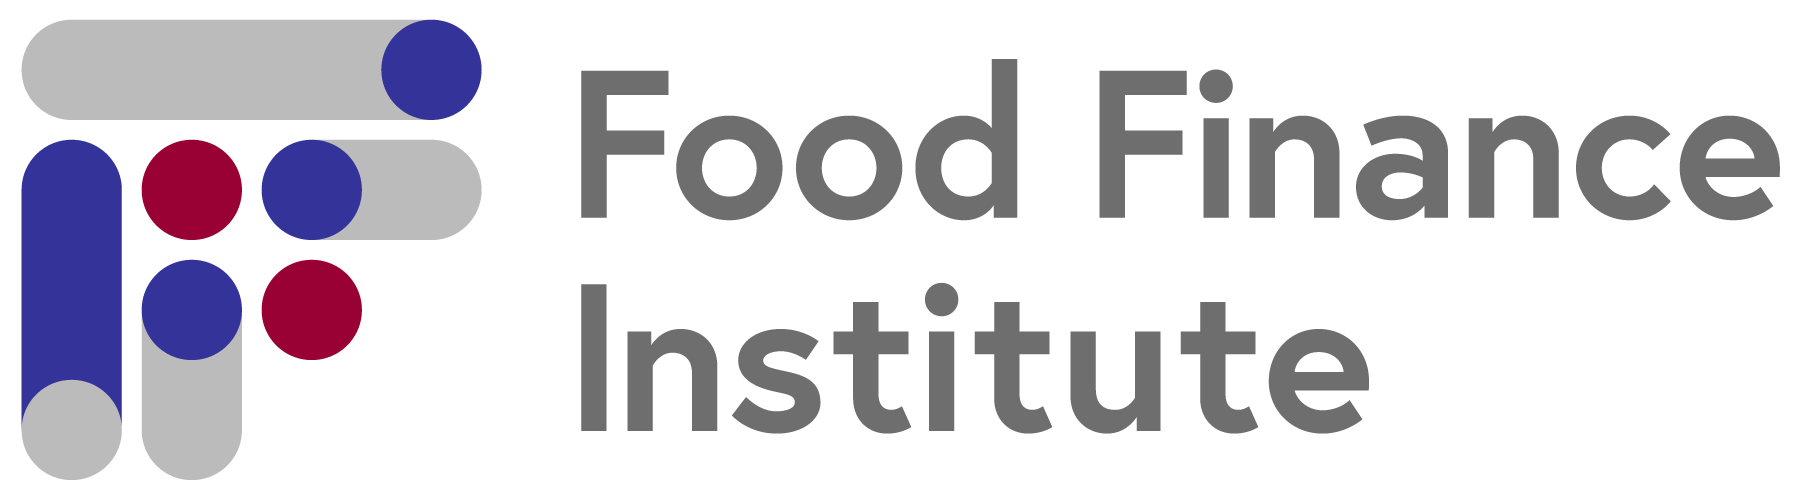 Food Finance Institute